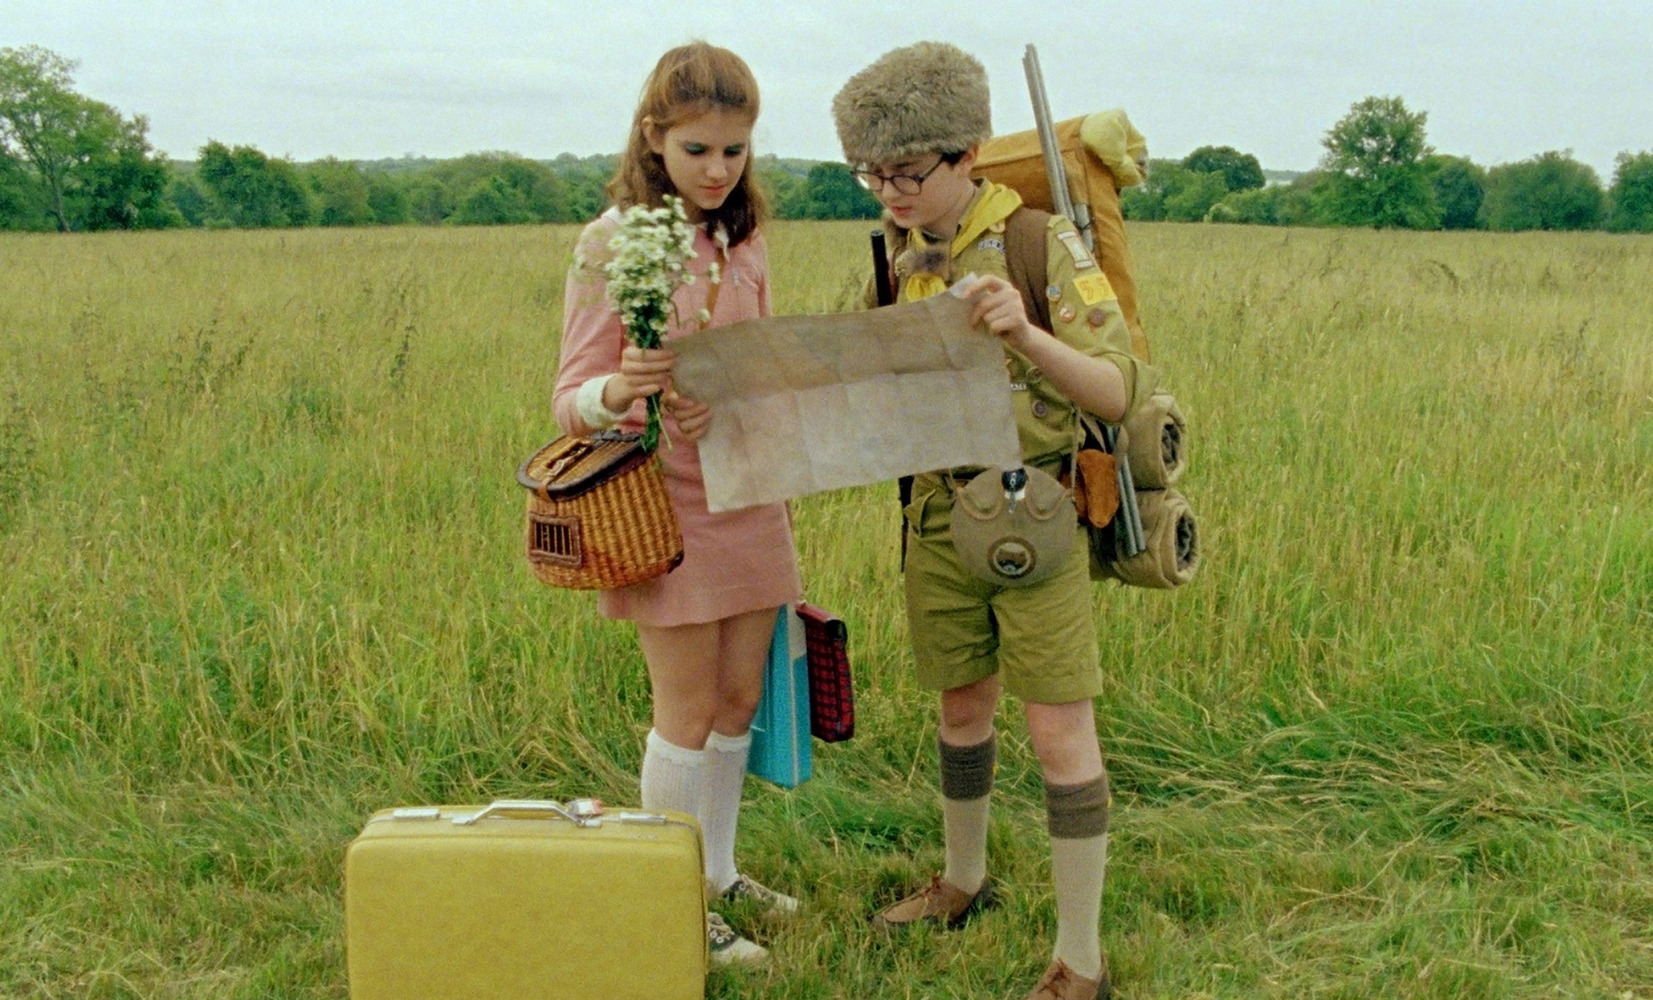 http://sojo.net/sites/default/files/mainimages/blog/movie_-_Moonrise-Kingdom.jpg